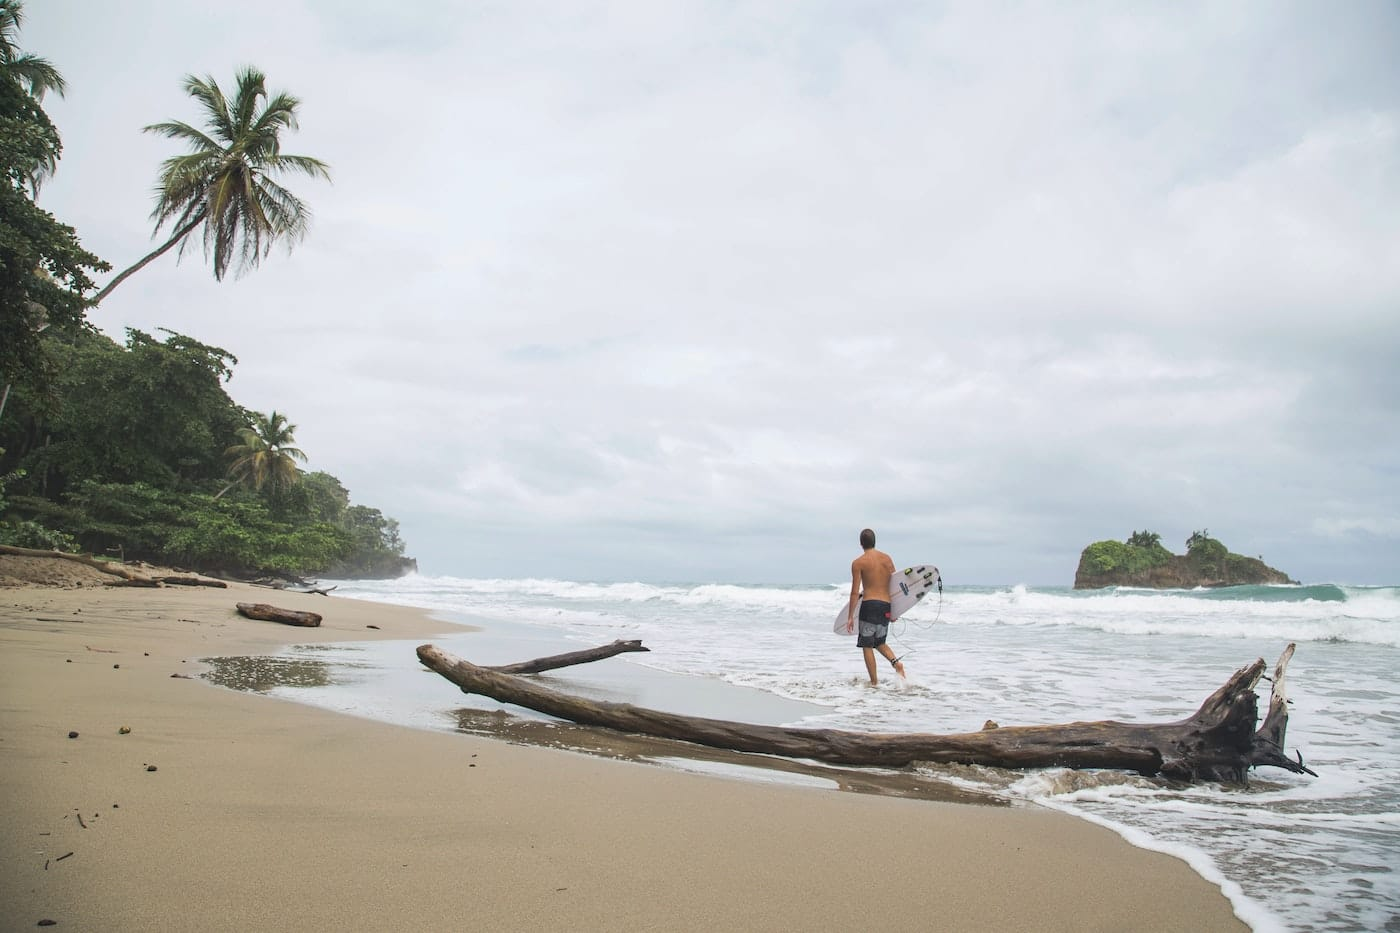 Puerto Viejo, Costa Rica: The Complete Surf Camp Guide